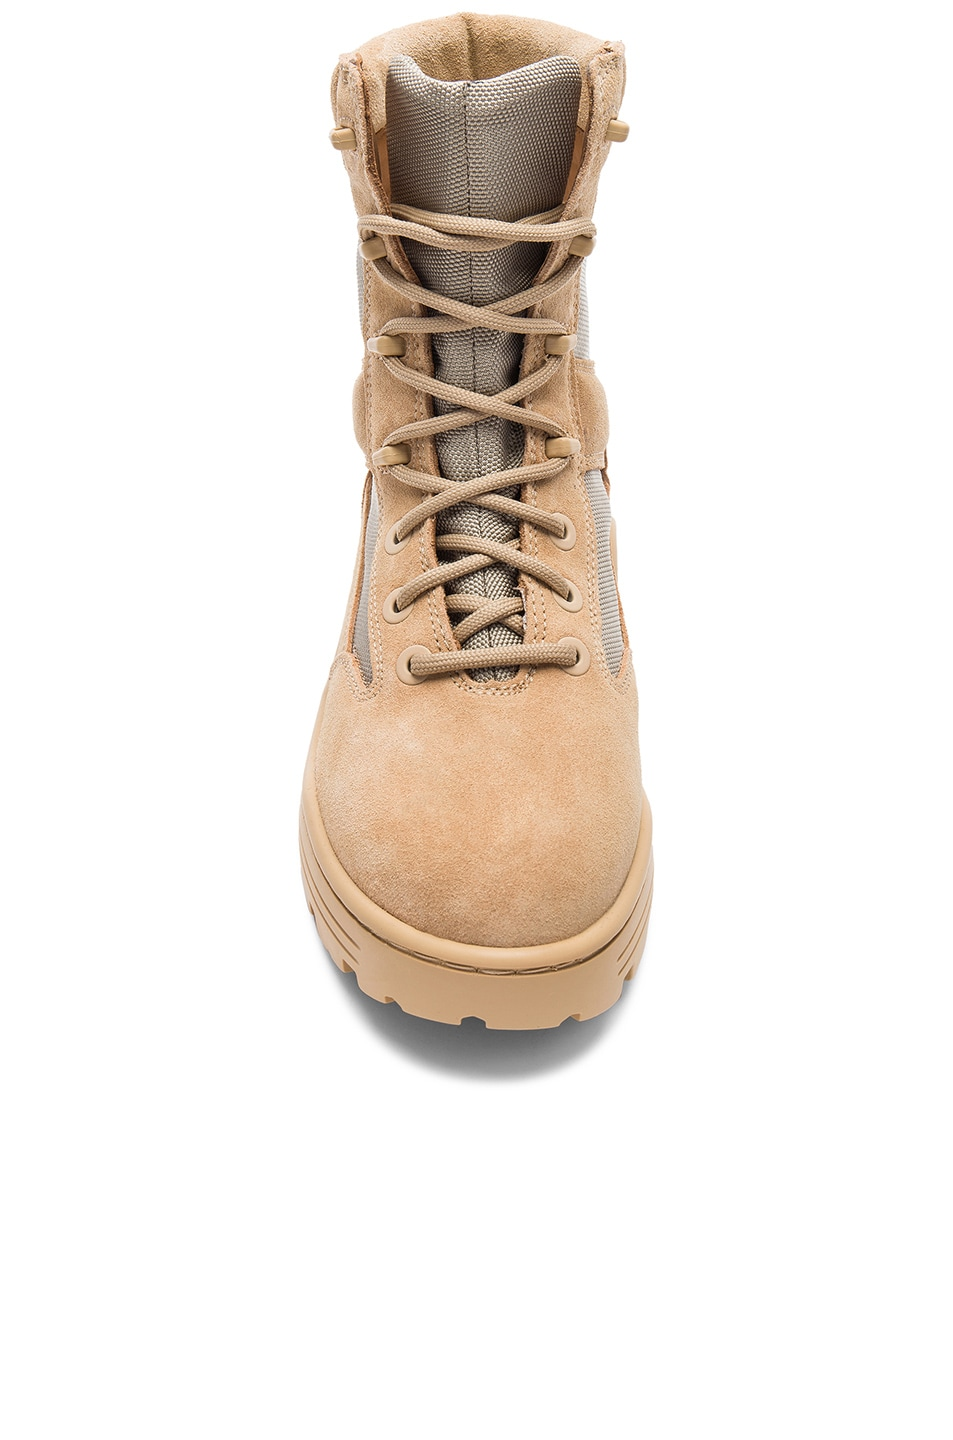 46d1fa149c59b Image 4 of YEEZY Season 4 Suede Combat Boots in Sand